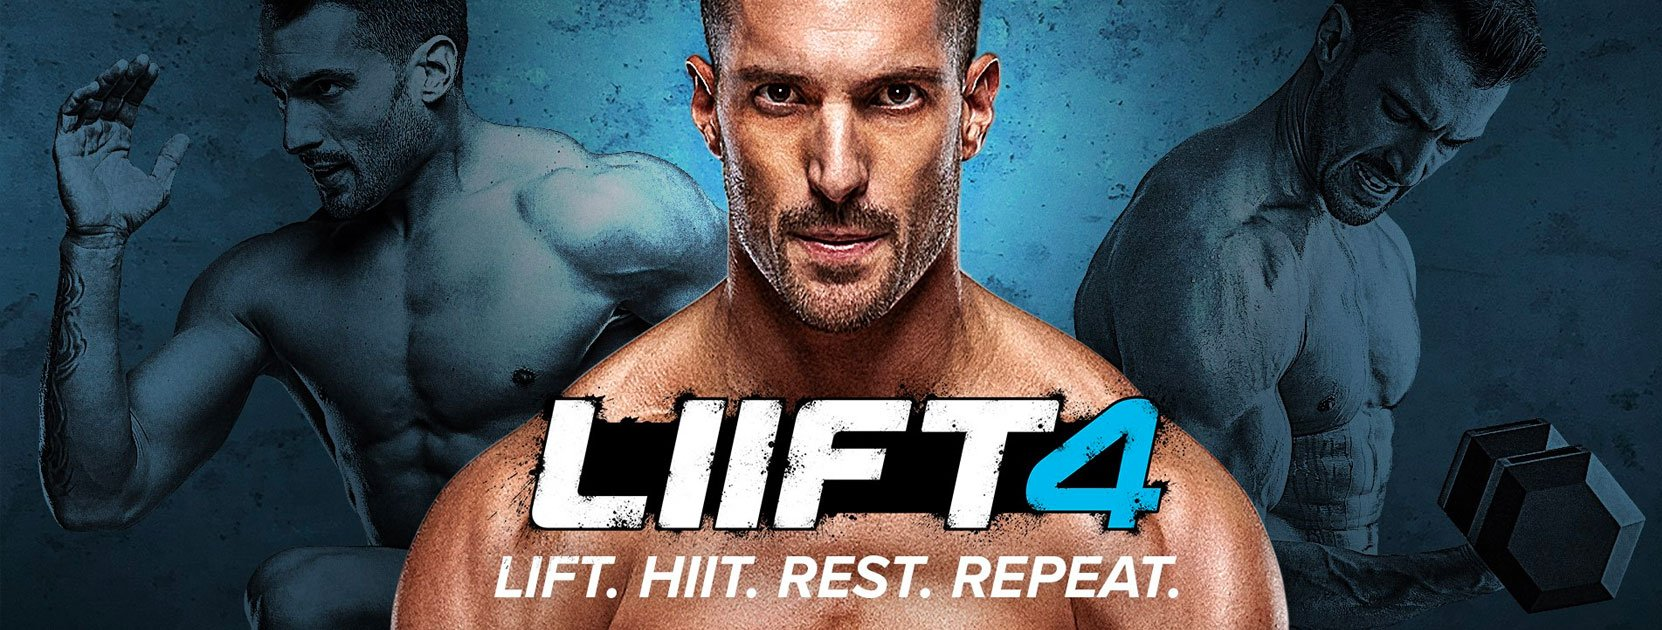 LIIFT4 Free Workout